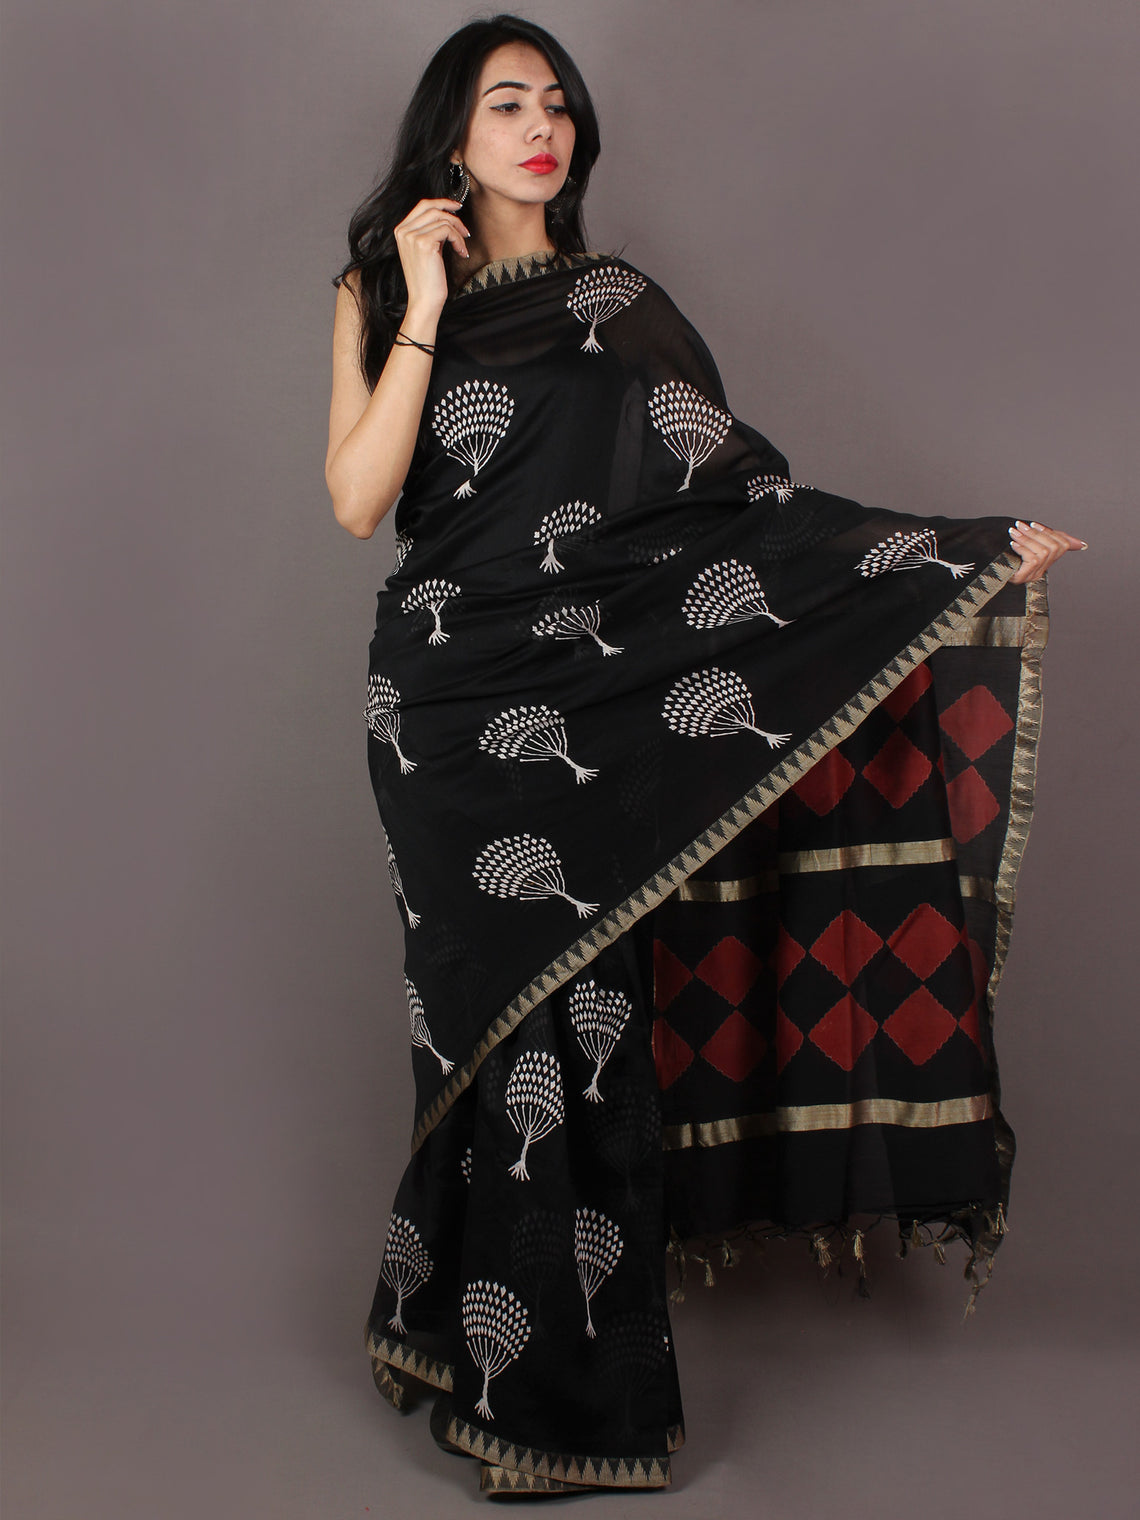 Black Red White Hand Block Printed in Natural Colors Chanderi Saree With Geecha Border - S031701016